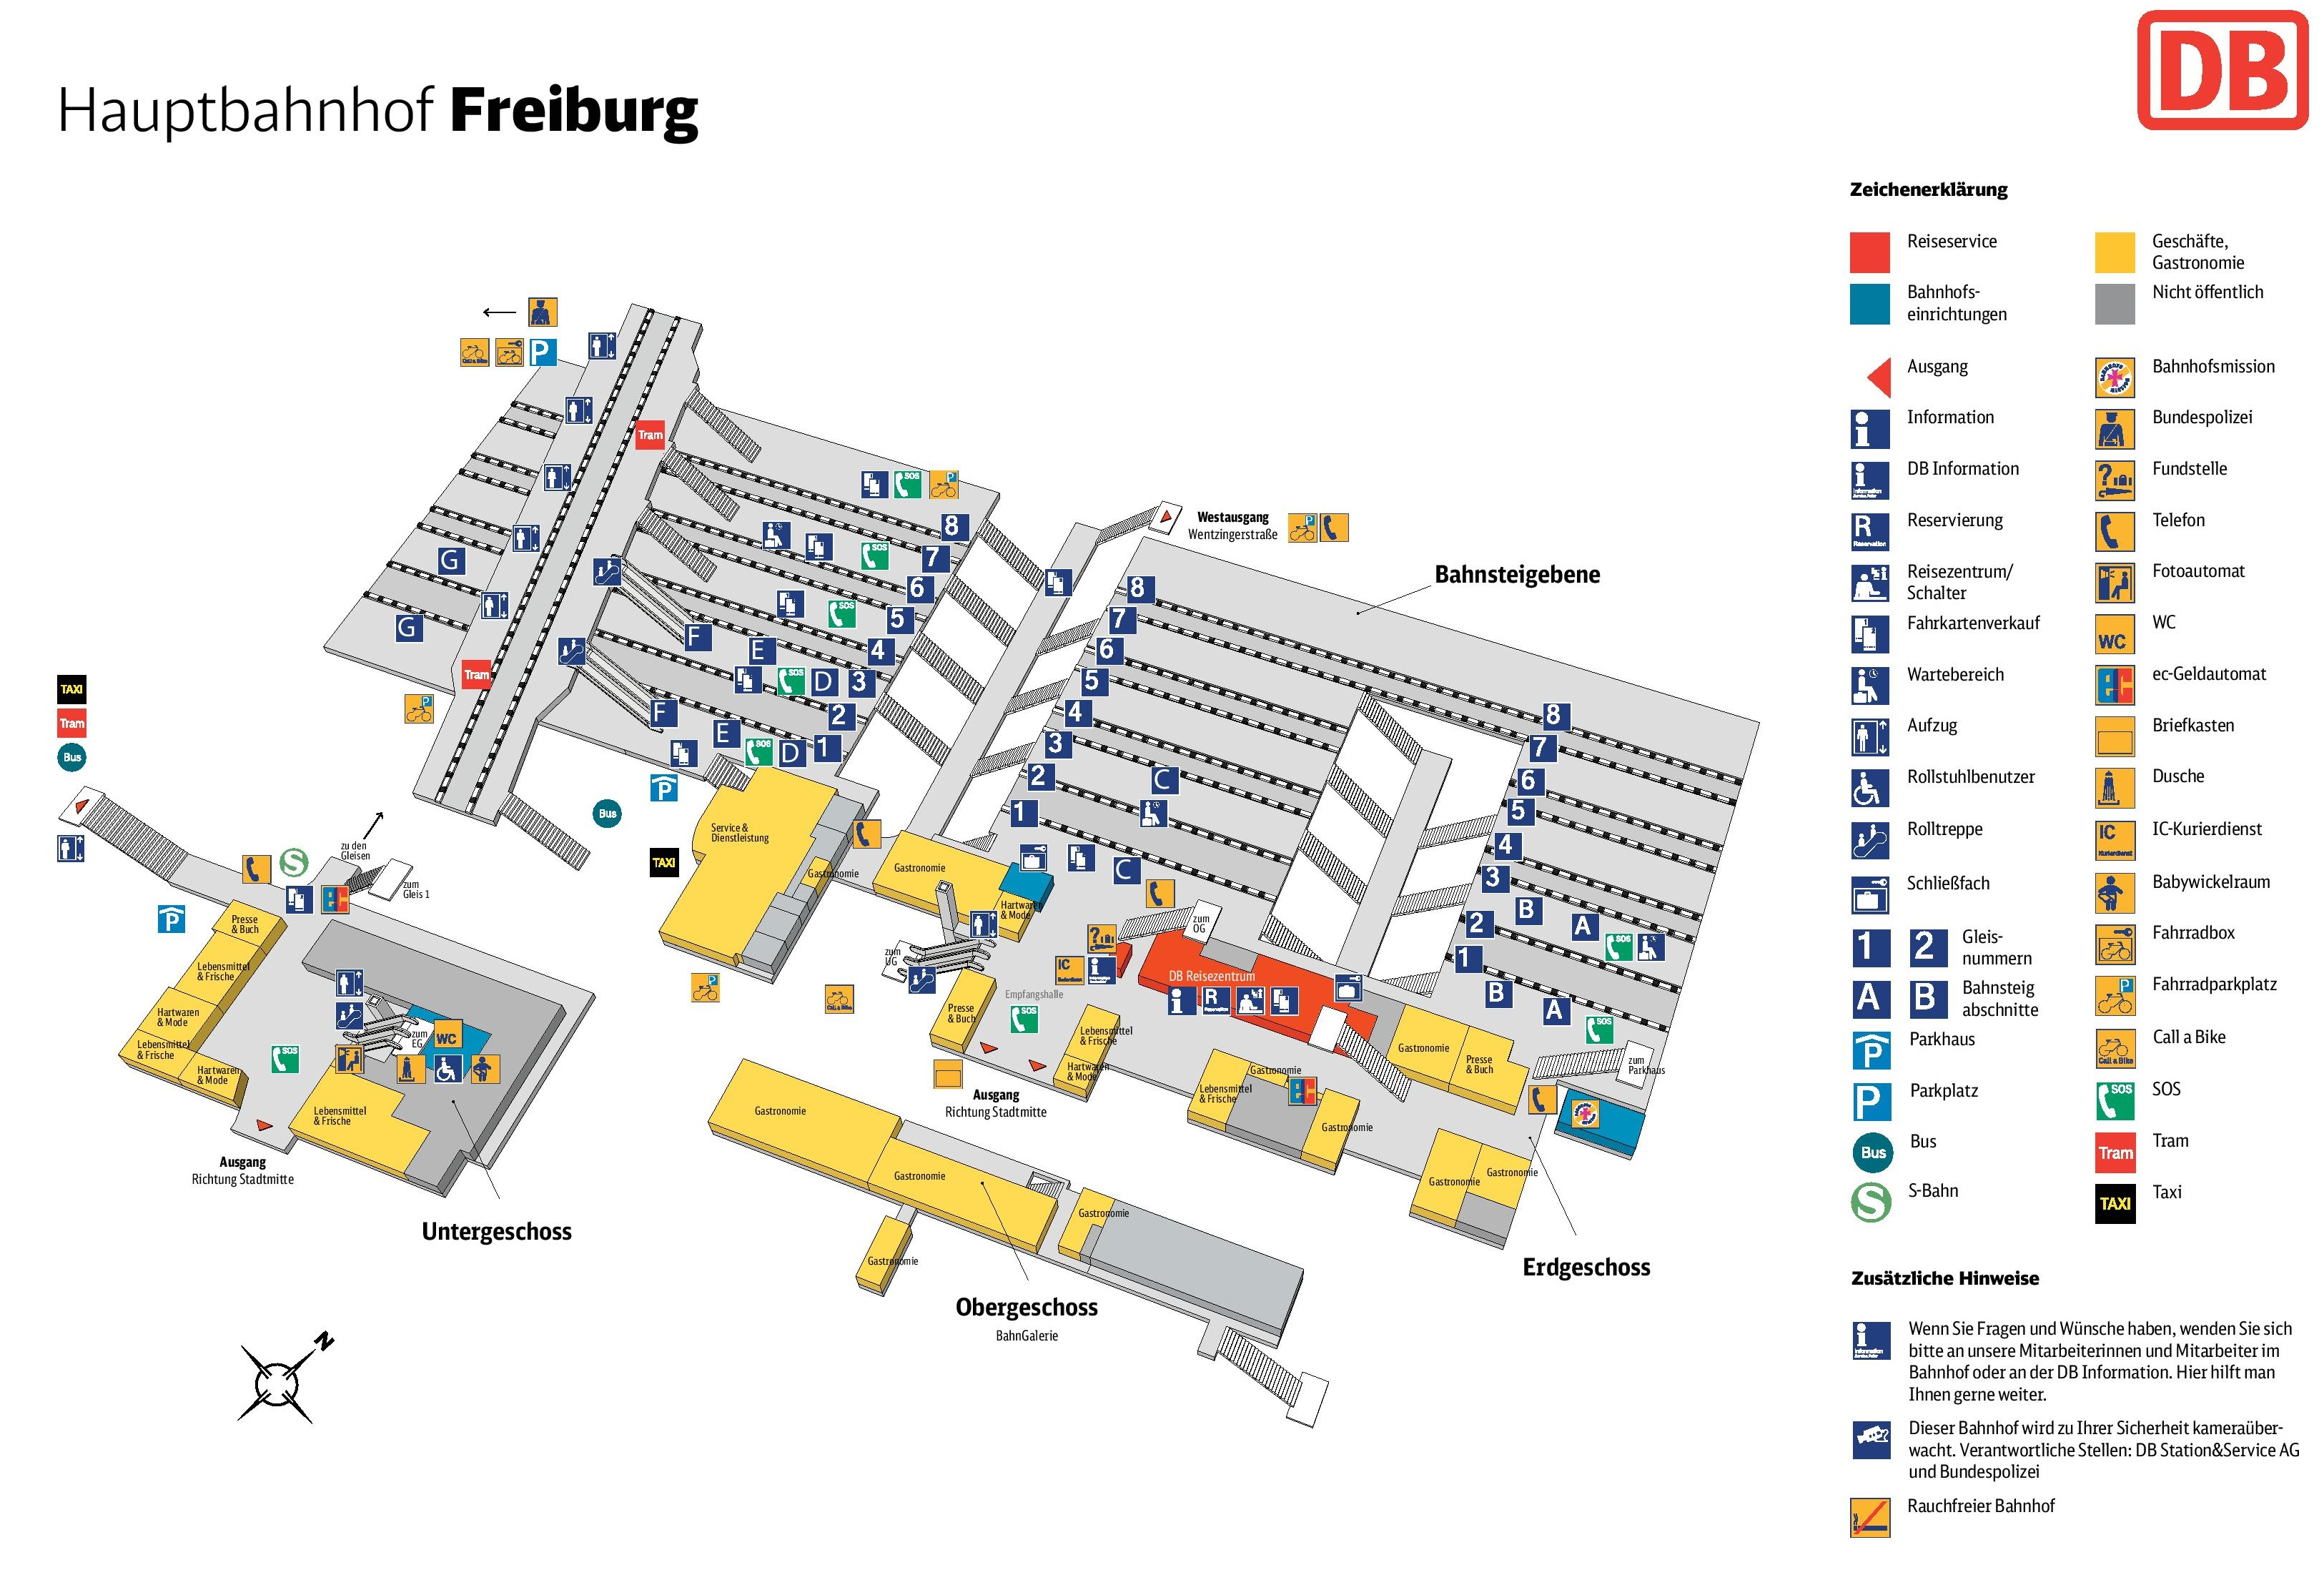 Freiburg hauptbahnhof map central train station